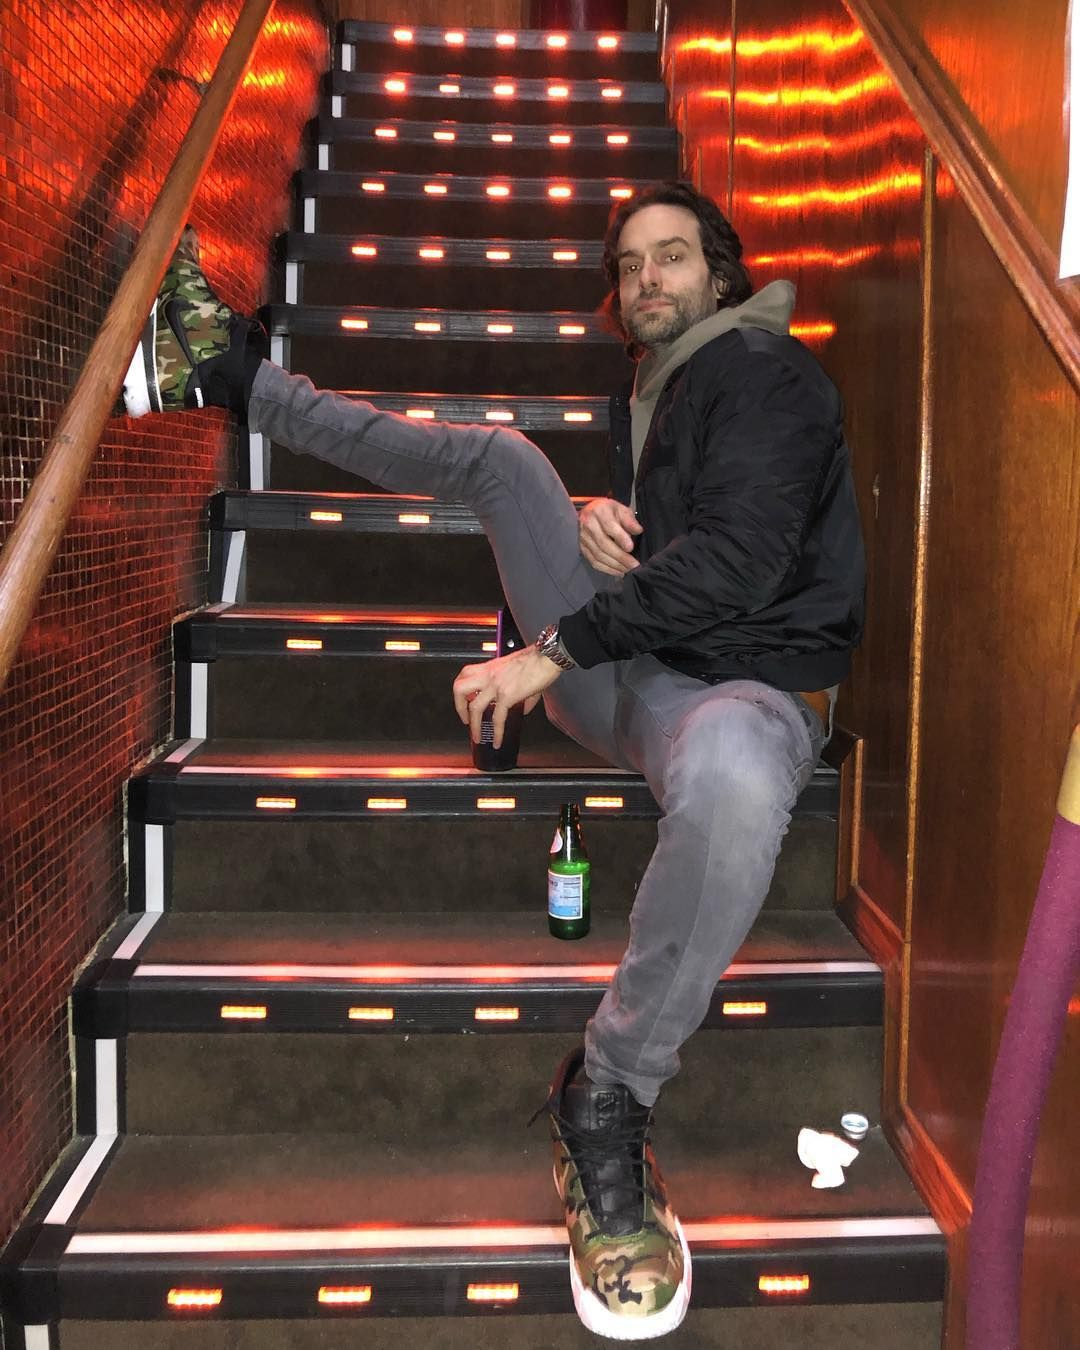 Image may contain: You season 2 cast, cast list, You, Netflix, season 2, Chris D'Elia, Henderson, Boot, Staircase, Human, Person, Banister, Handrail, Shoe, Apparel, Footwear, Clothing